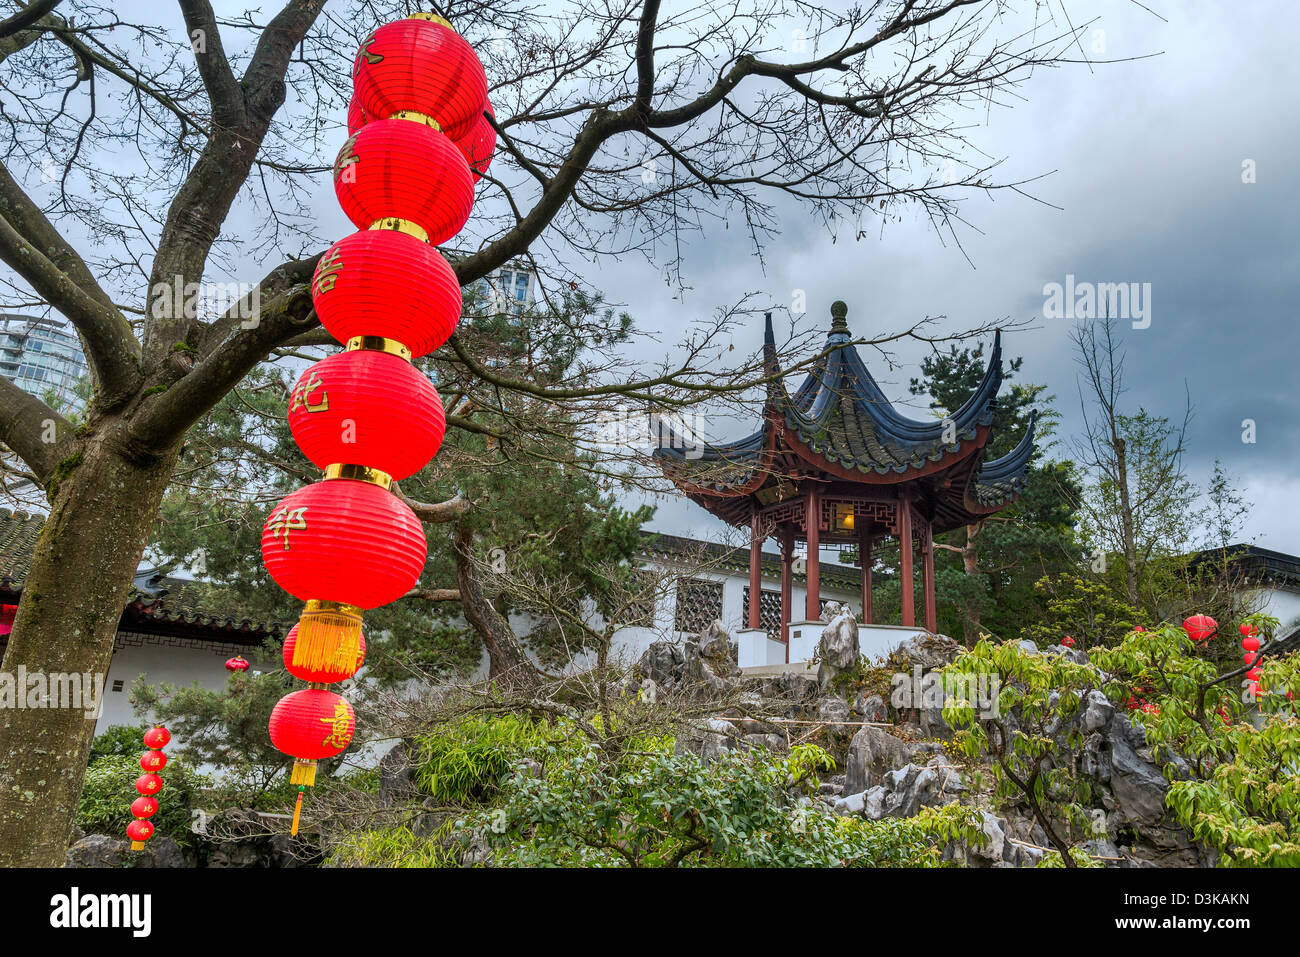 Red lanterns decorate, Dr Sun Yat Sen Garden for Chinese New Year, Chinatown, Vancouver, British Columbia, Canada Stock Photo